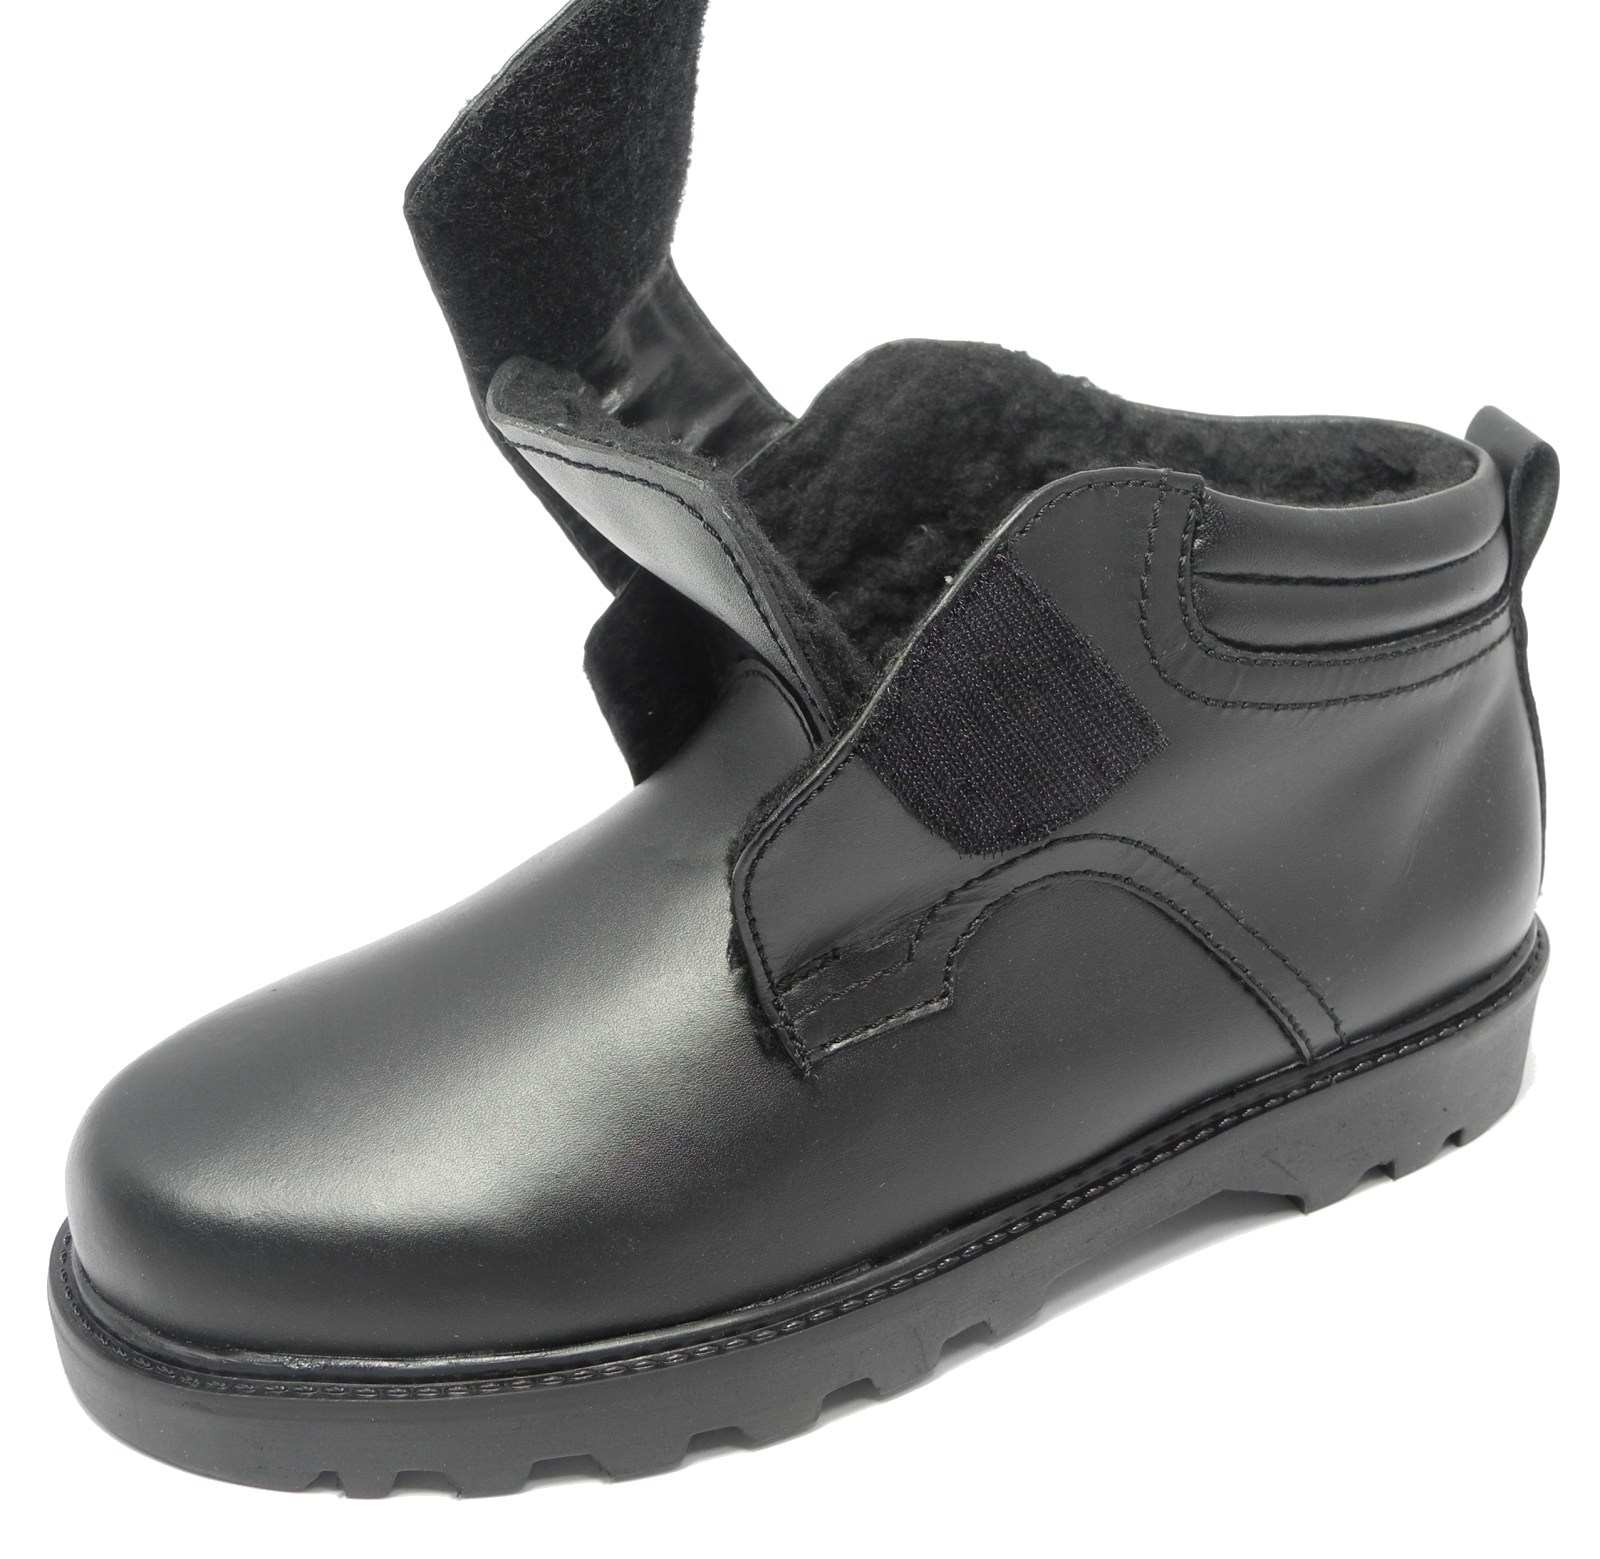 Mens Wide Fitting Snow Boots | Planetary Skin Institute